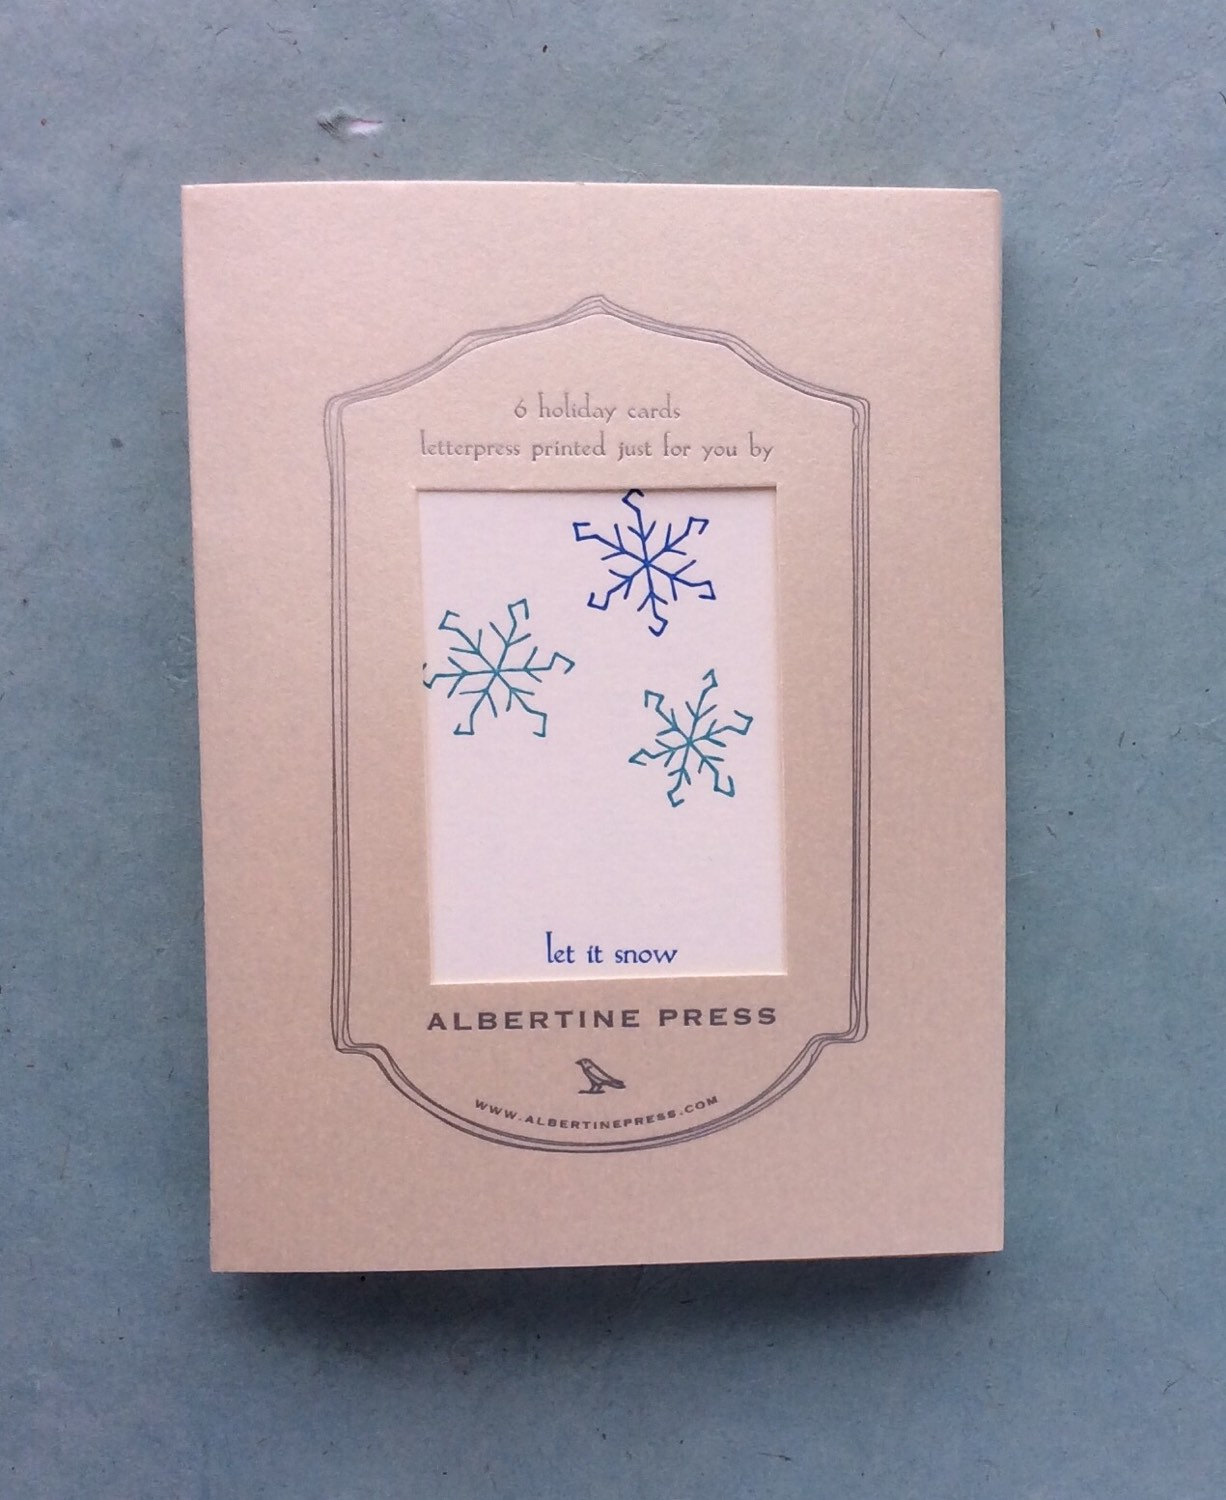 let it snow box of six letterpress holiday cards albertine press